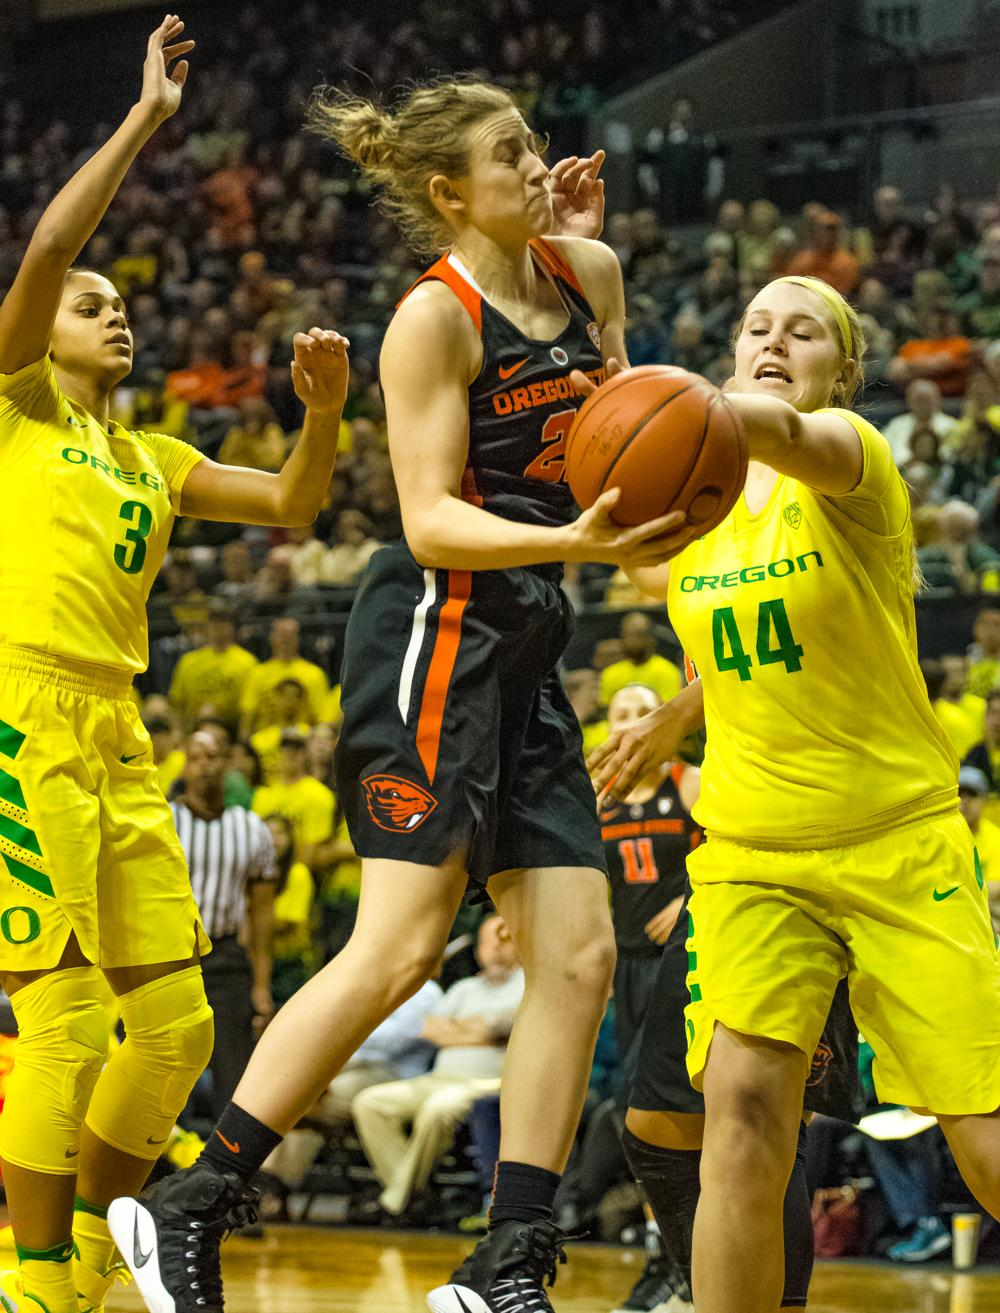 Oregon Ducks Forward Mallory McGwire (#44) knocks the ball out of Guard Taylor Kalmer (#25) hands to save a easy bucket. Oregon Ducks lost 40-43 to Oregon State Beavers in a tightly matched fourth quarter. Photo by Jonathan Booker, Oregon News Lab